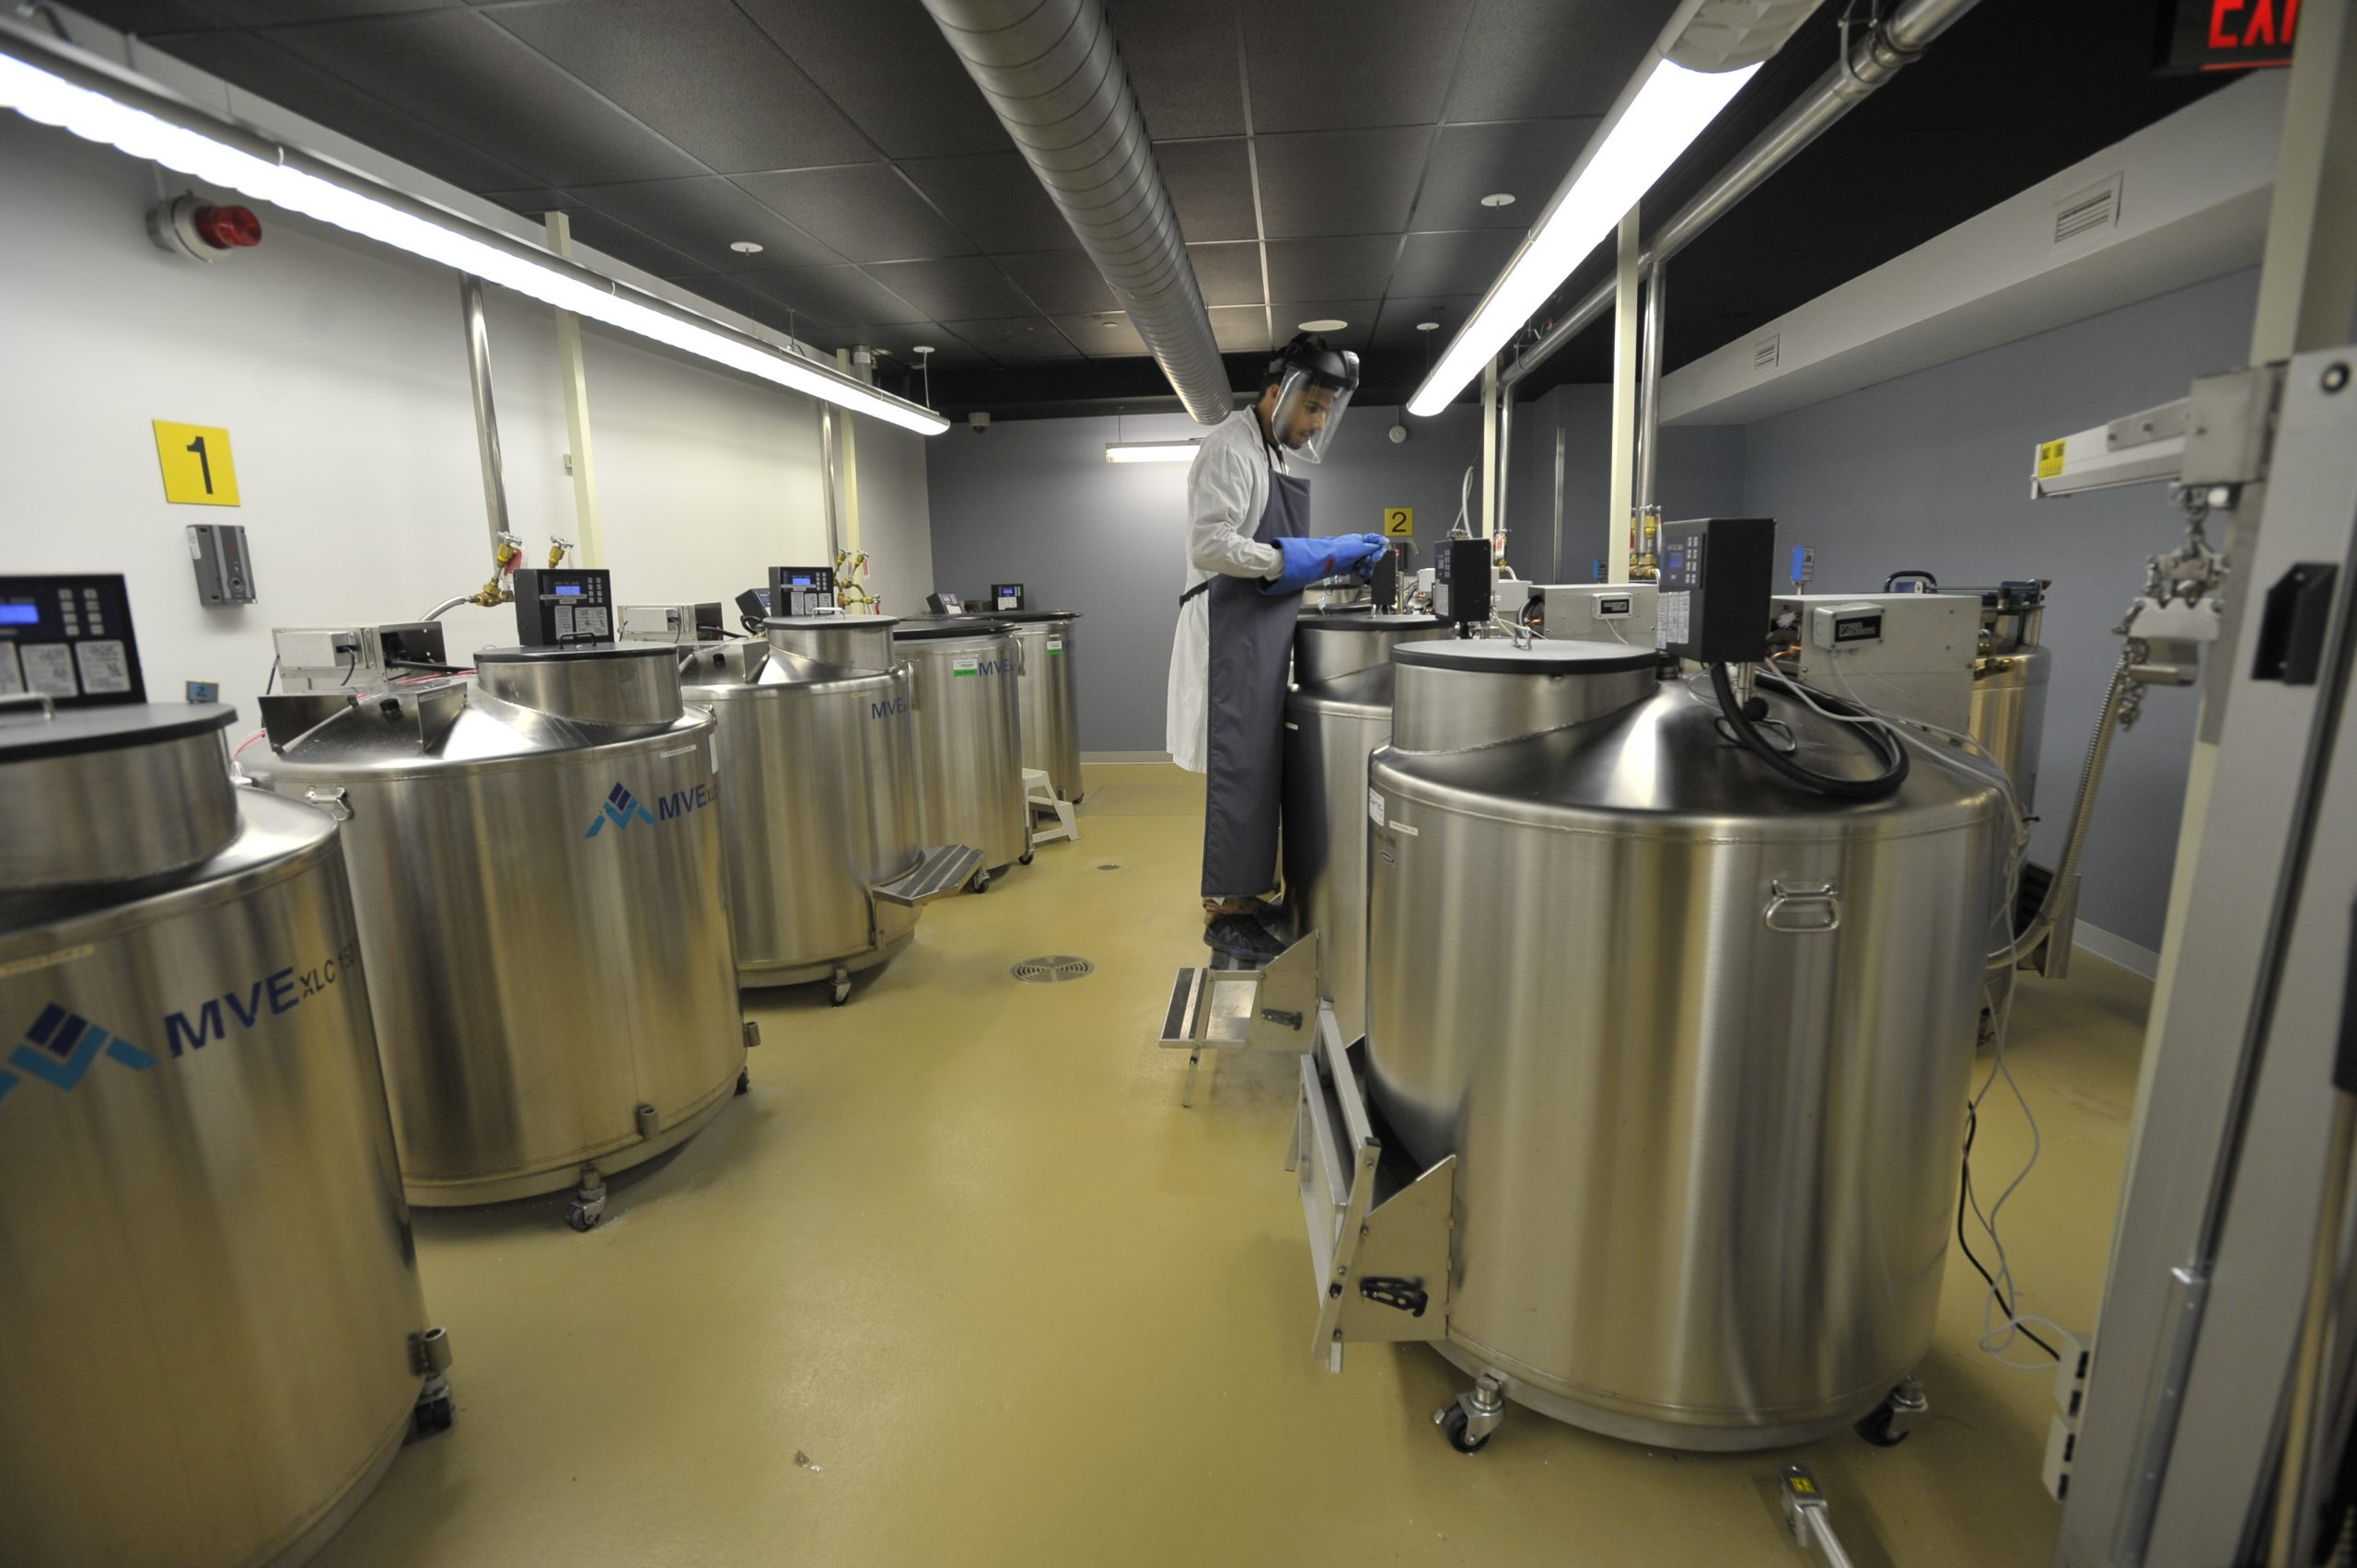 Liquid nitrogen freezers at the former OHS biosample processing site. Photo by JP Moczulski/CP Images.